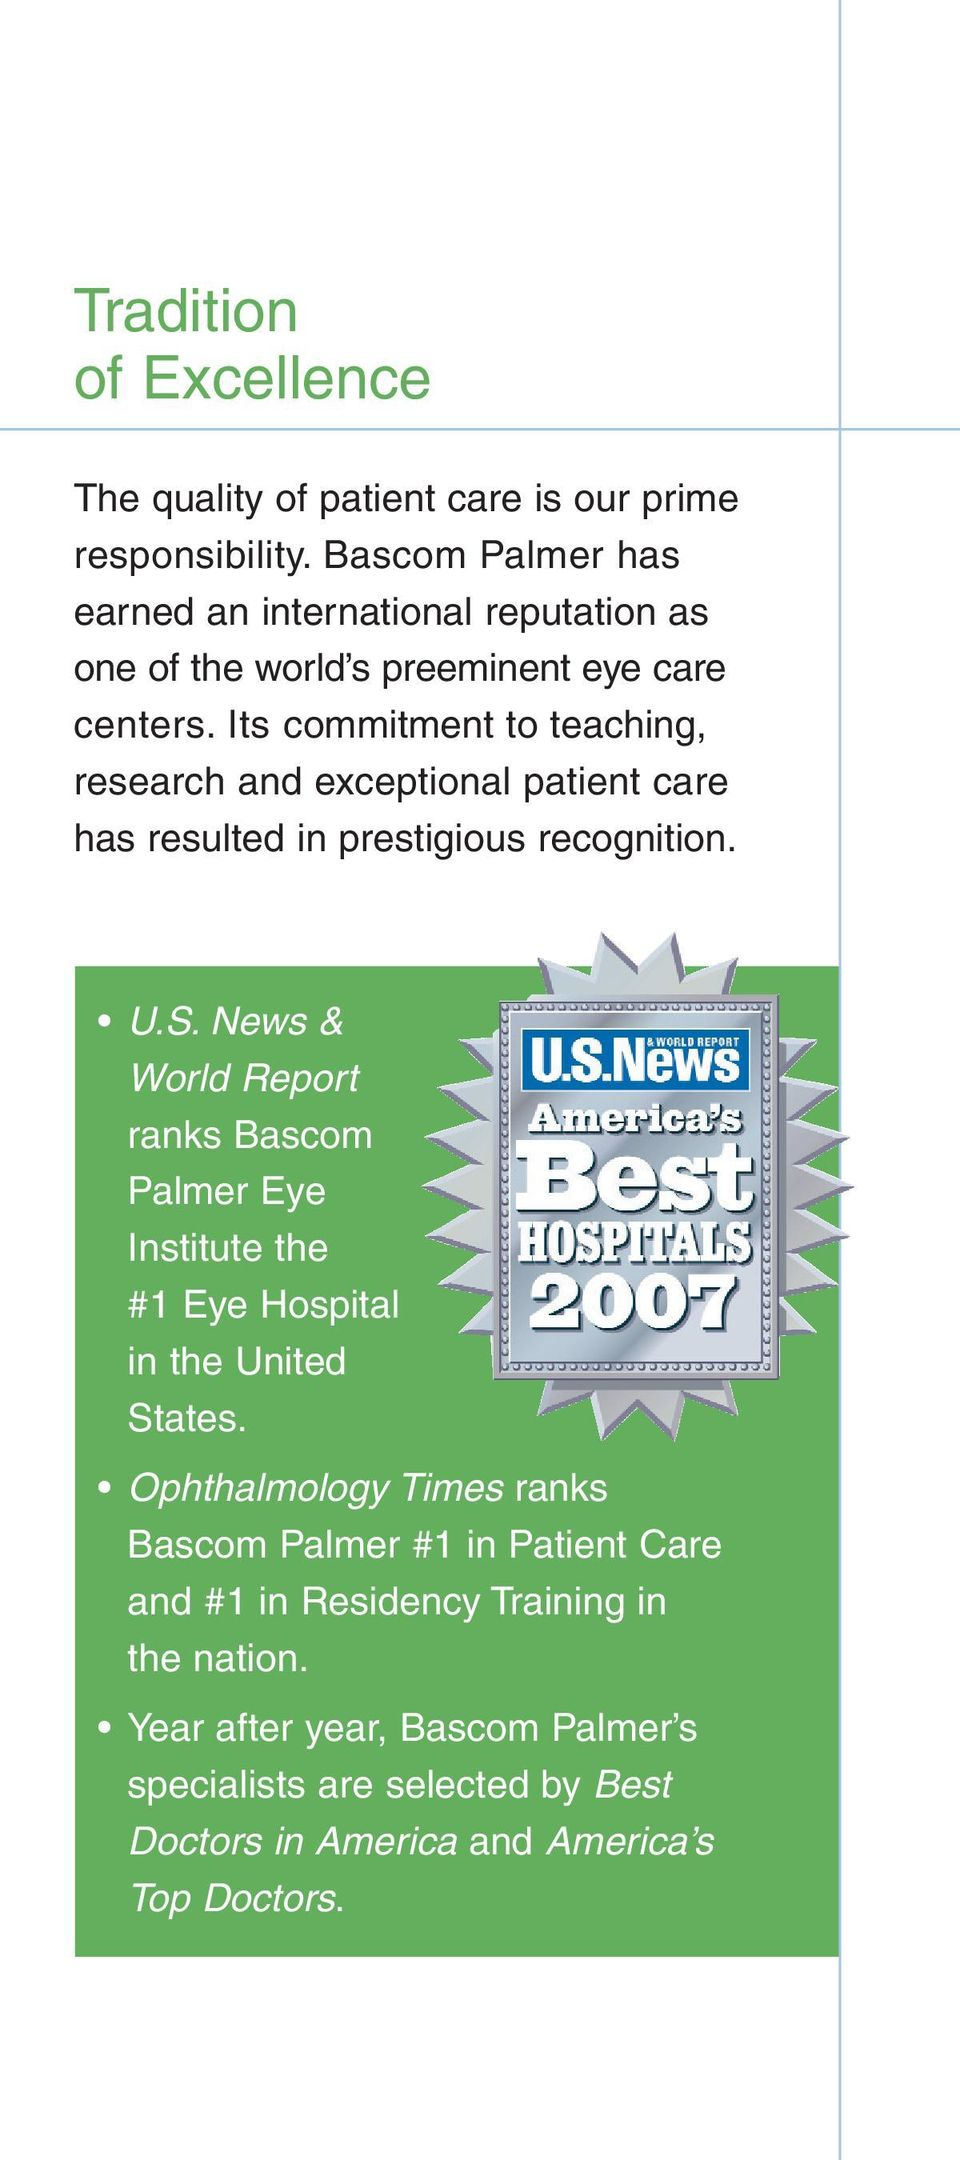 Its commitment to teaching, research and exceptional patient care has resulted in prestigious recognition. U.S.